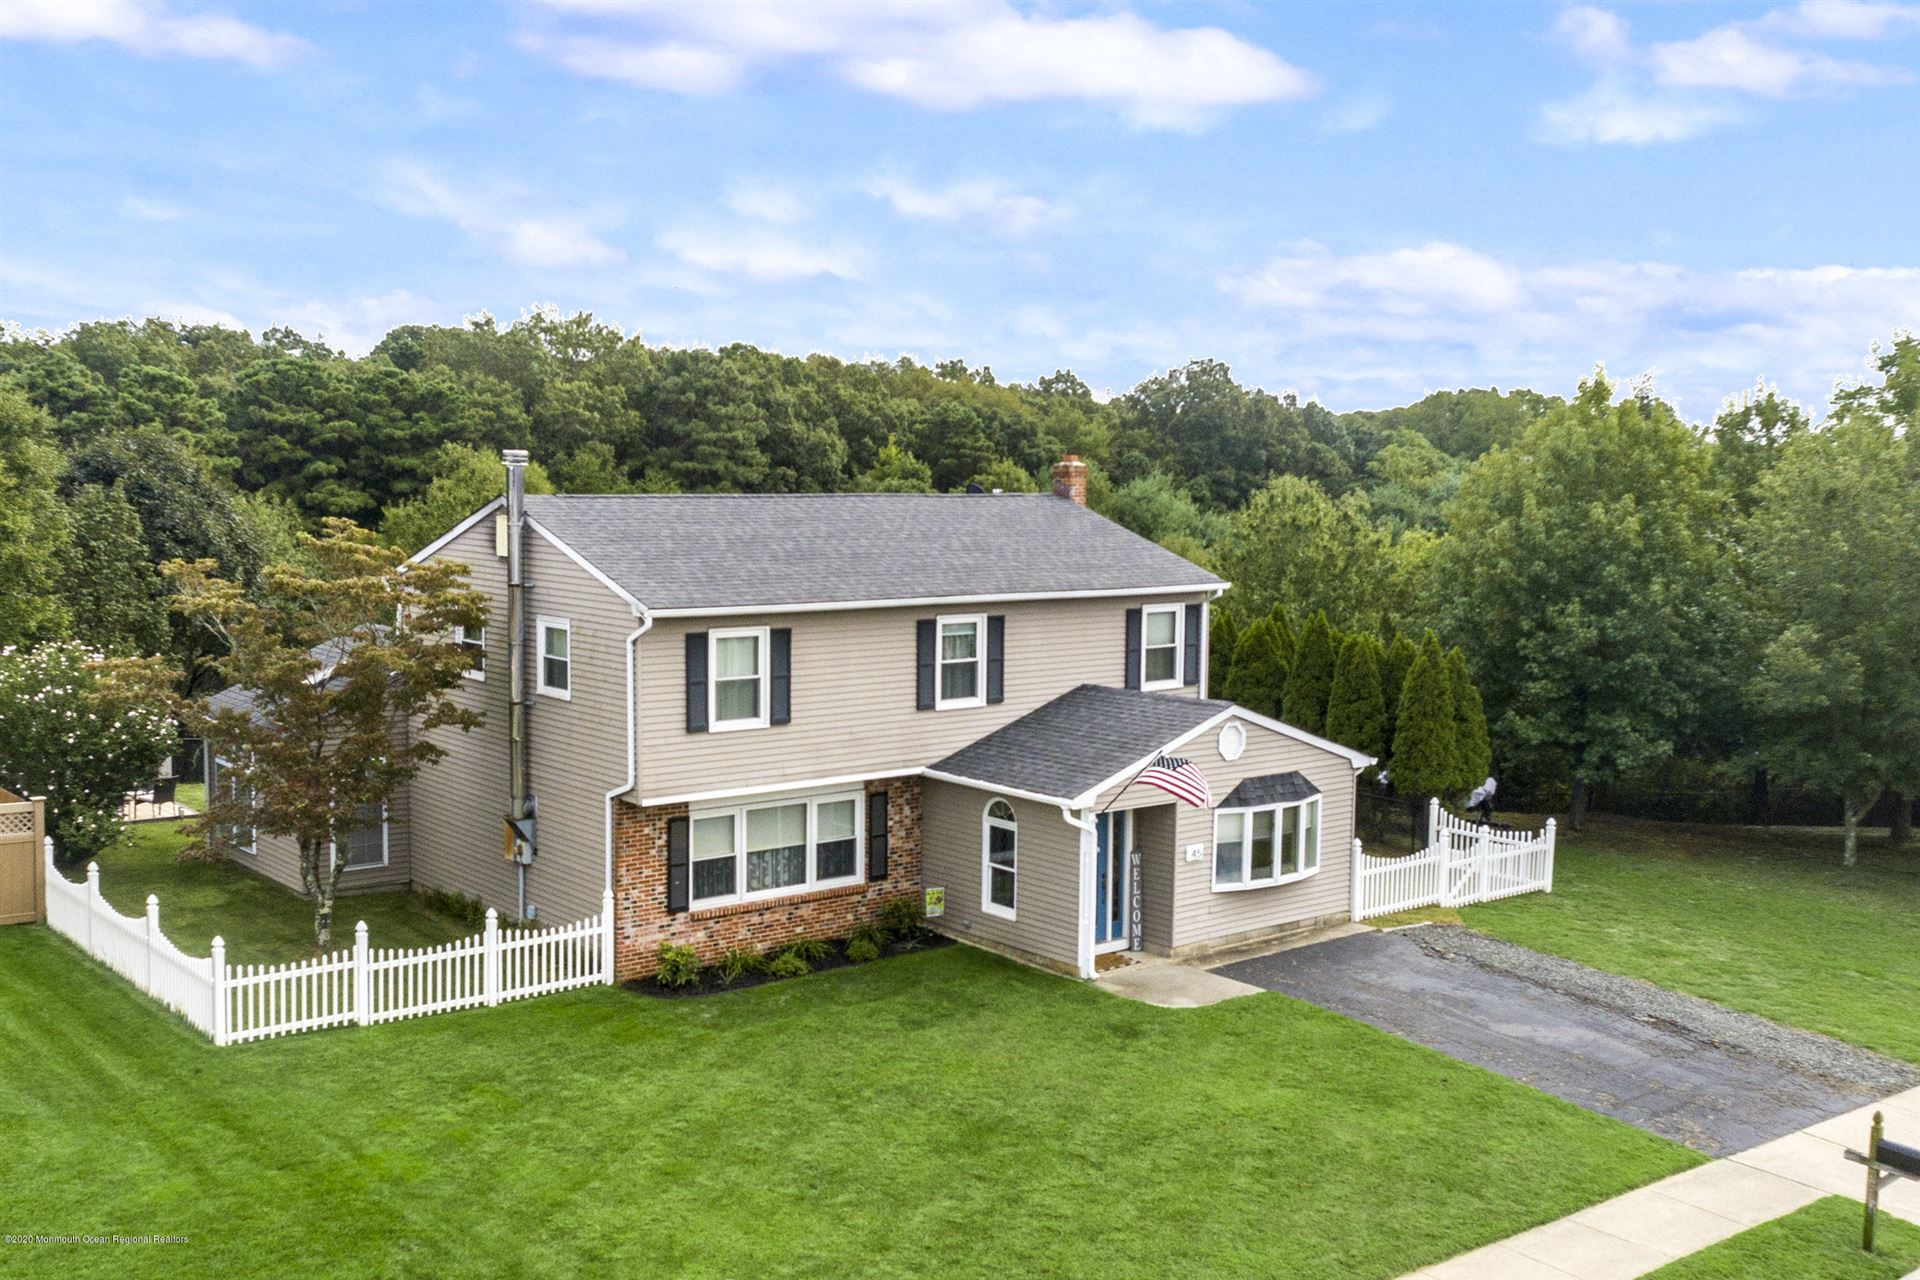 45 Lorelei Drive, Howell, NJ 07731 - MLS#: 22033475